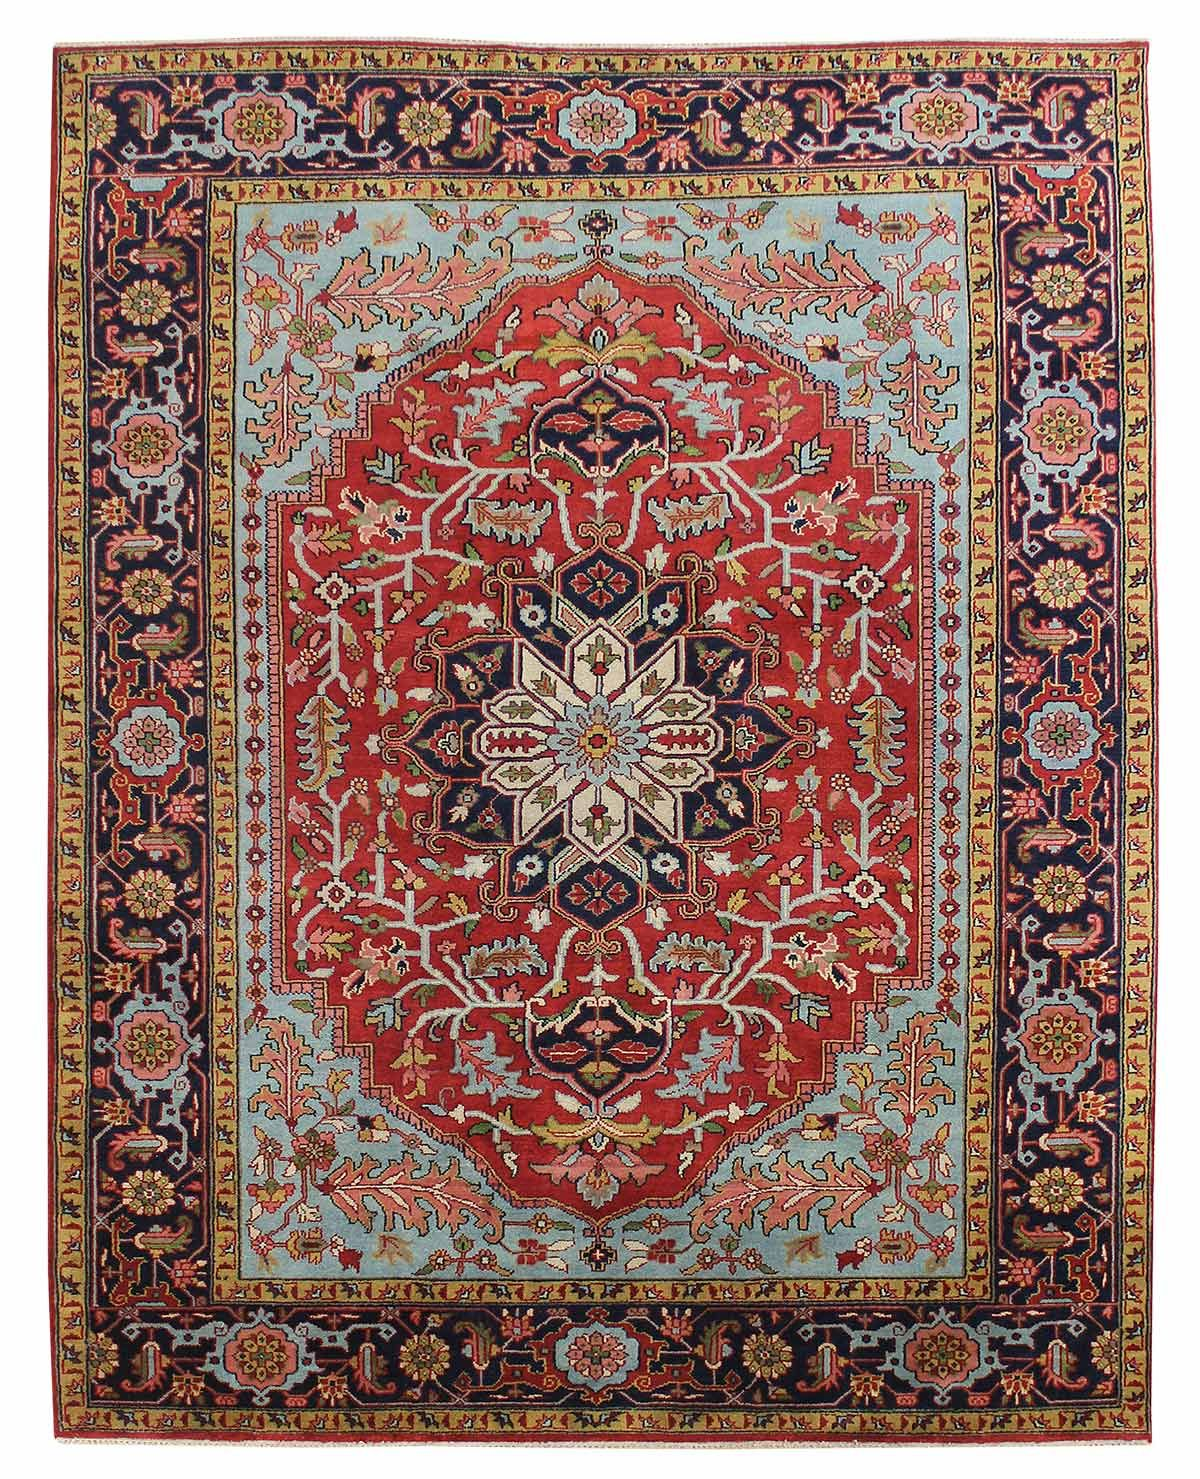 Best Value Traditional Rugs Gallery Serapi Design Rug Hand Knotted In India